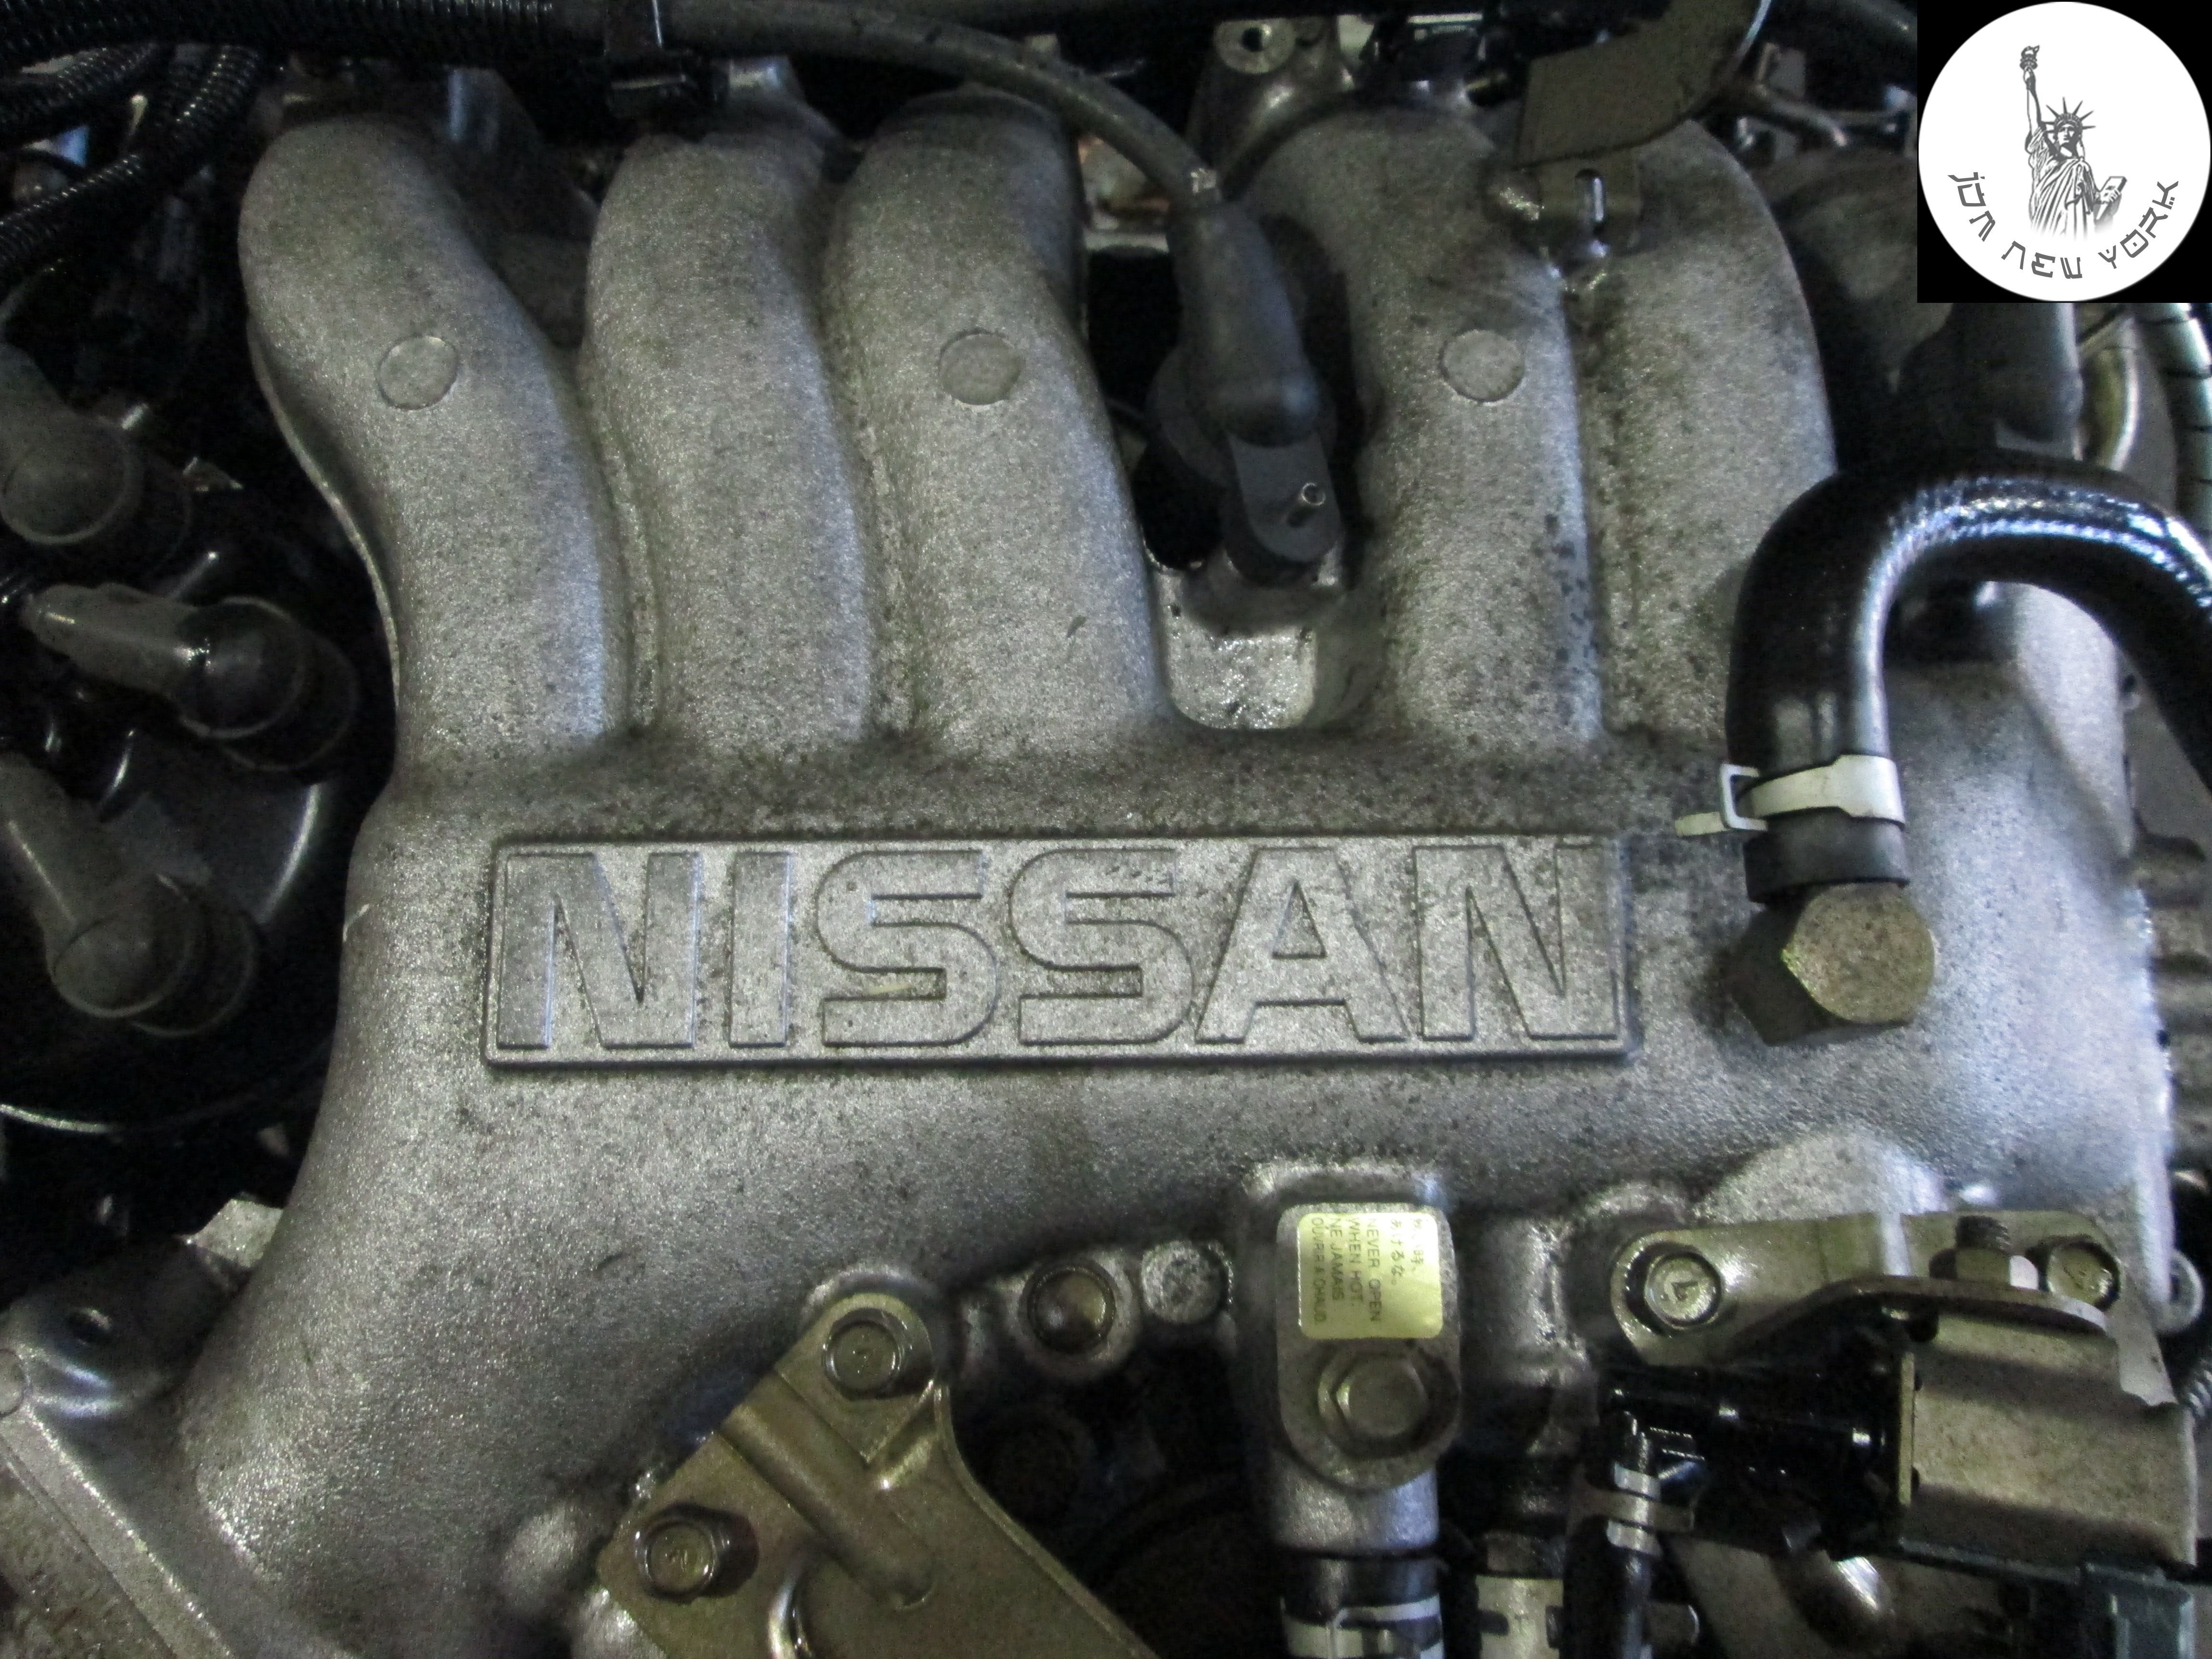 0bf90ad65c7533e30268d938daa224a1 96 04 nissan pathfinder xterra frontier 3 3l v6 engine jdm vg33  at soozxer.org